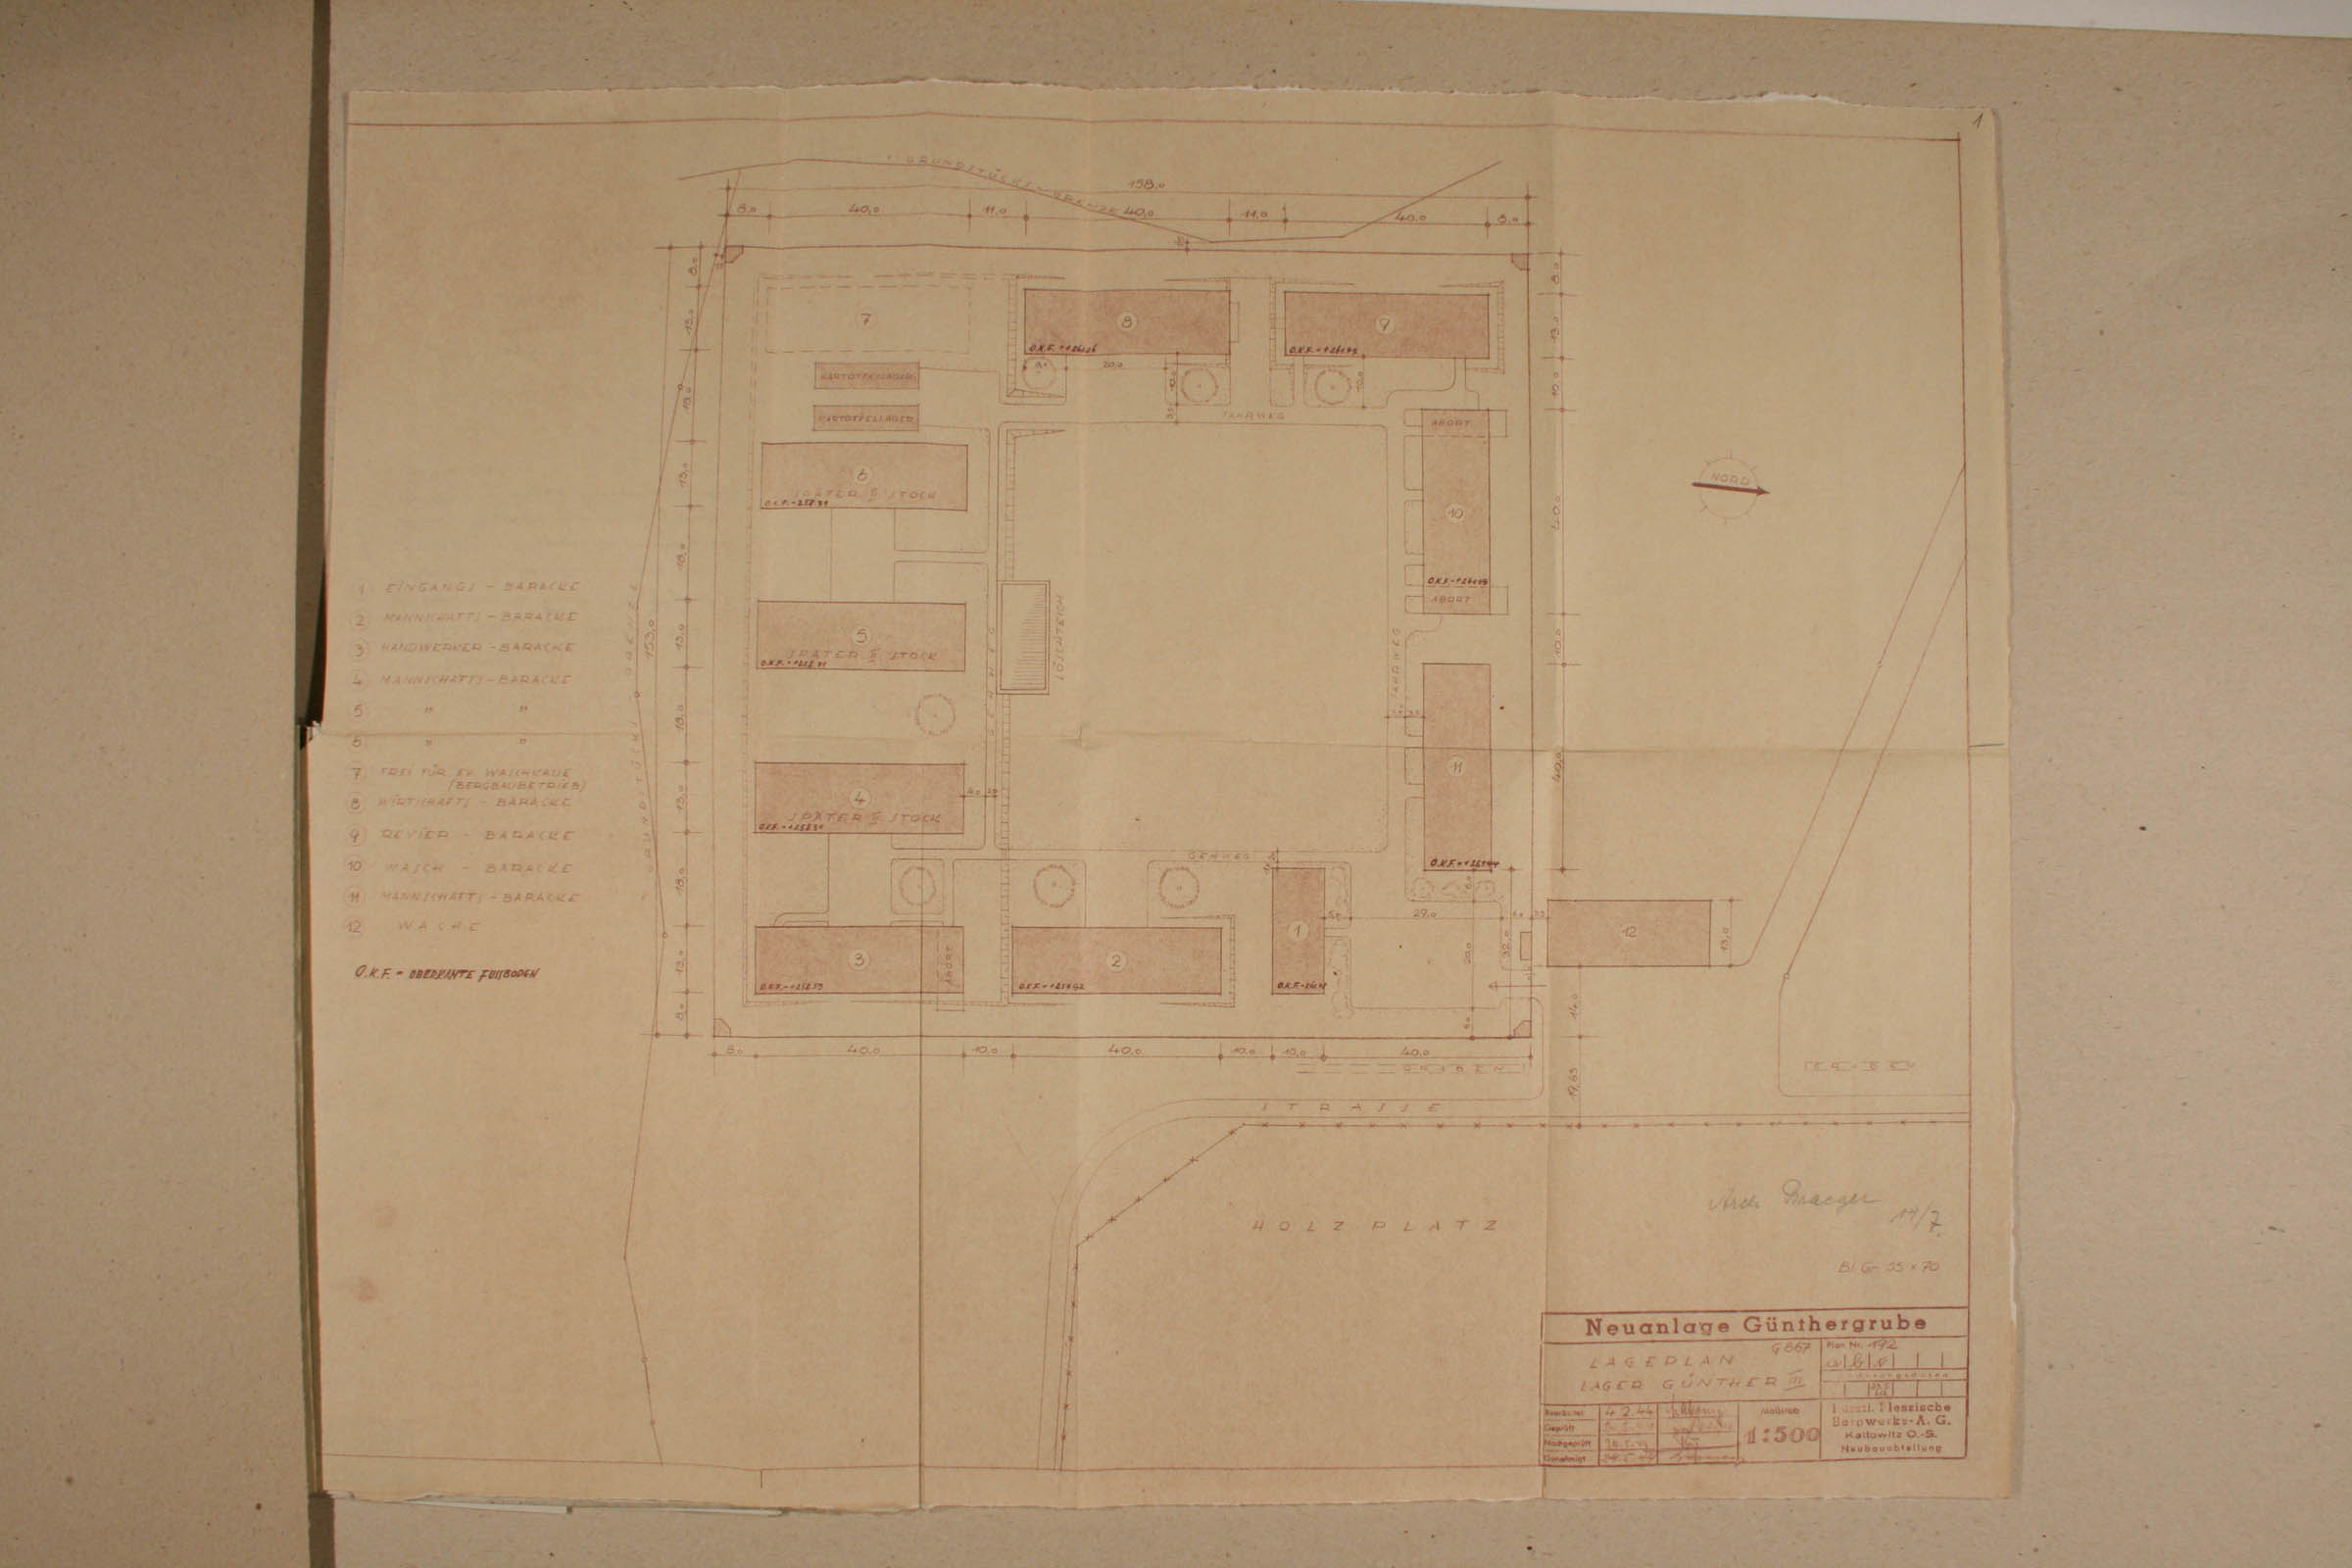 Technical drawing of Lager Günther III. Archiwum Panstwowe w Katowicach Land Pl 12 120 708 01